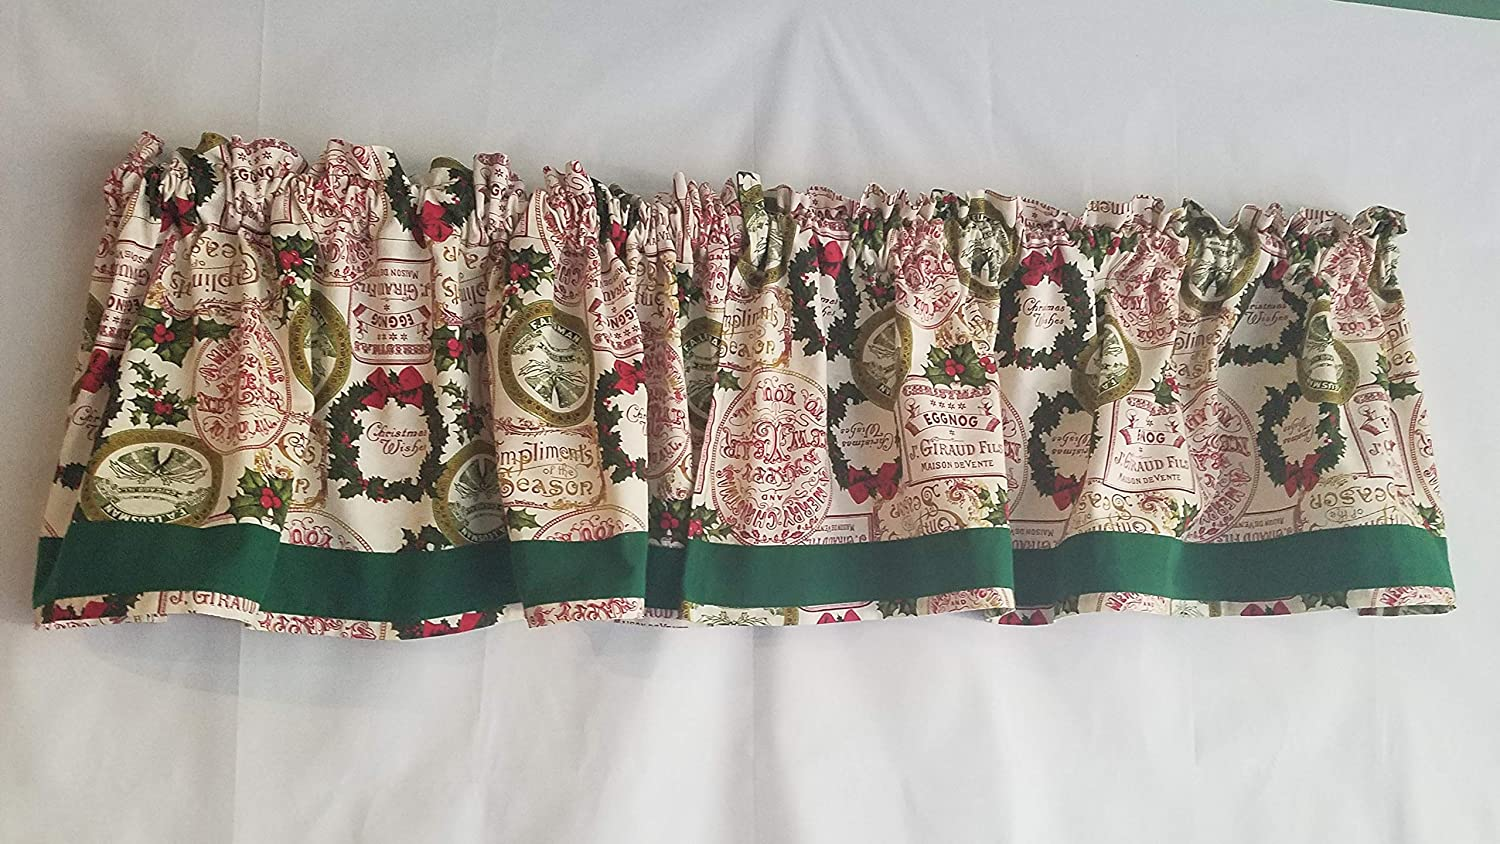 Christmas Bells Christmas Curtain Valance Green and Red Curtains 42-43 Inches Wide x 14.25 Inches Long Festive Christmas Curtain Vintage Christmas Curtain Valance Wreaths